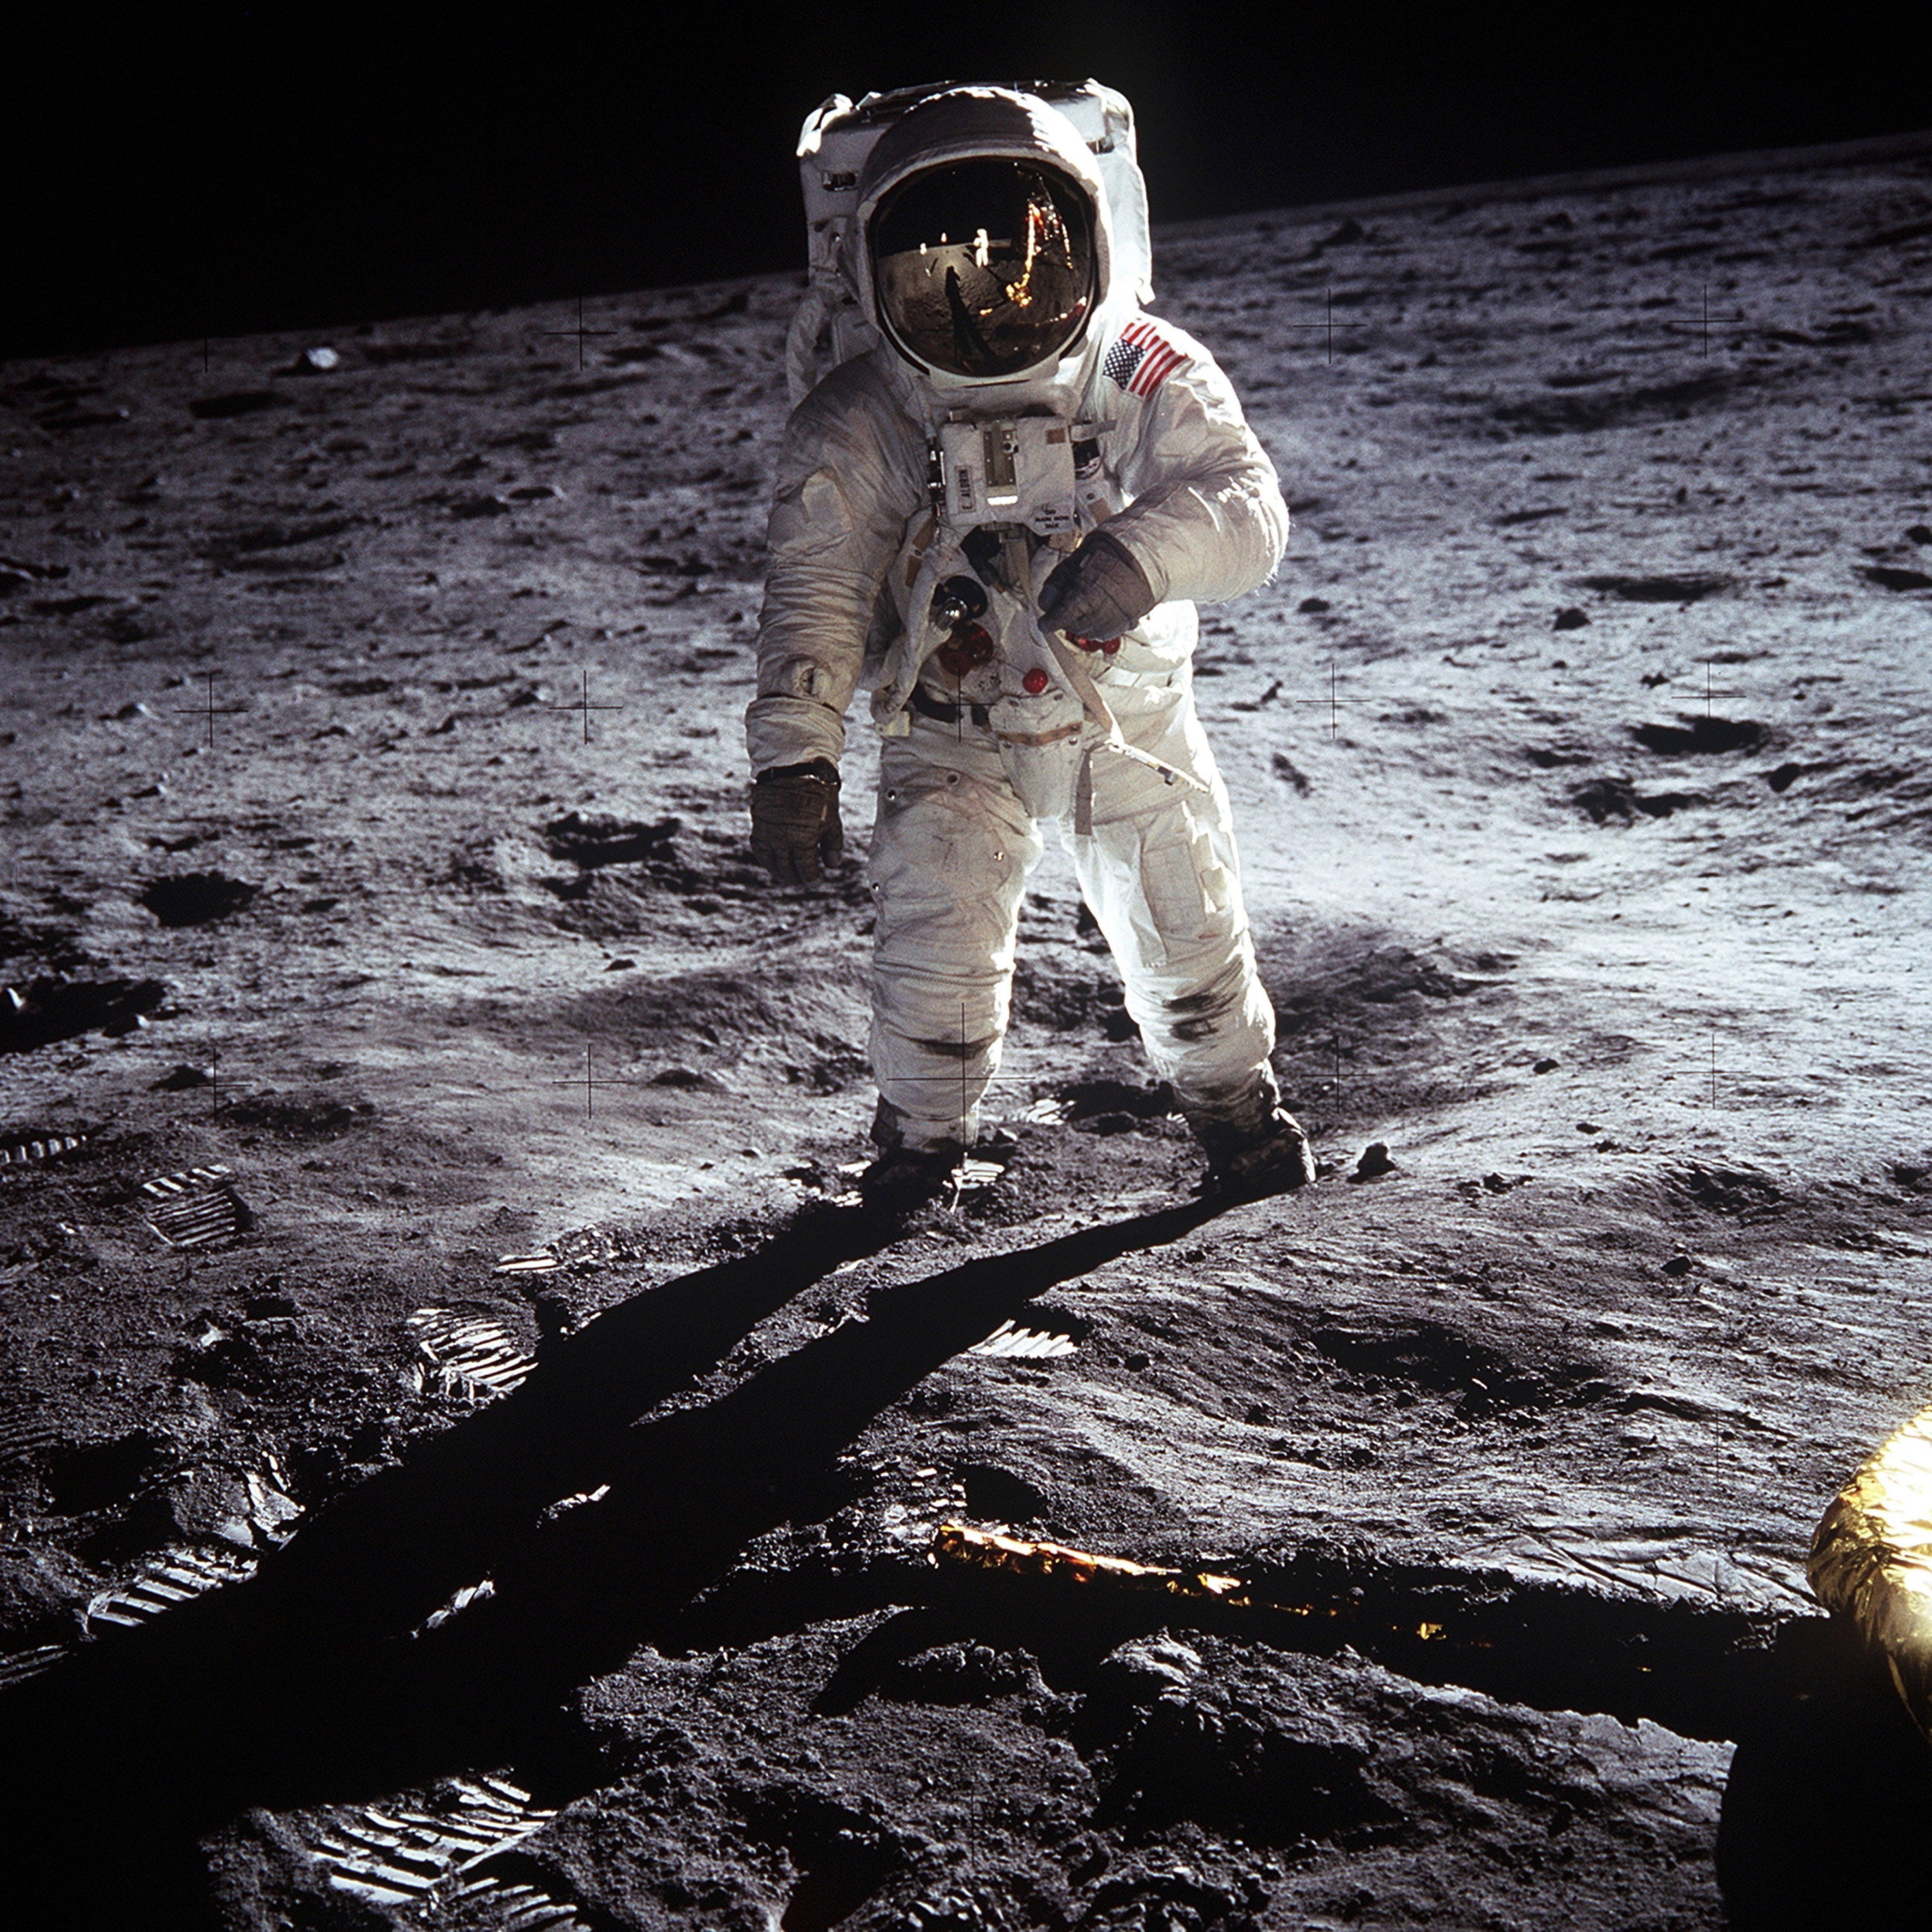 11 Proofs That The Apollo Moon Landings Were NOT